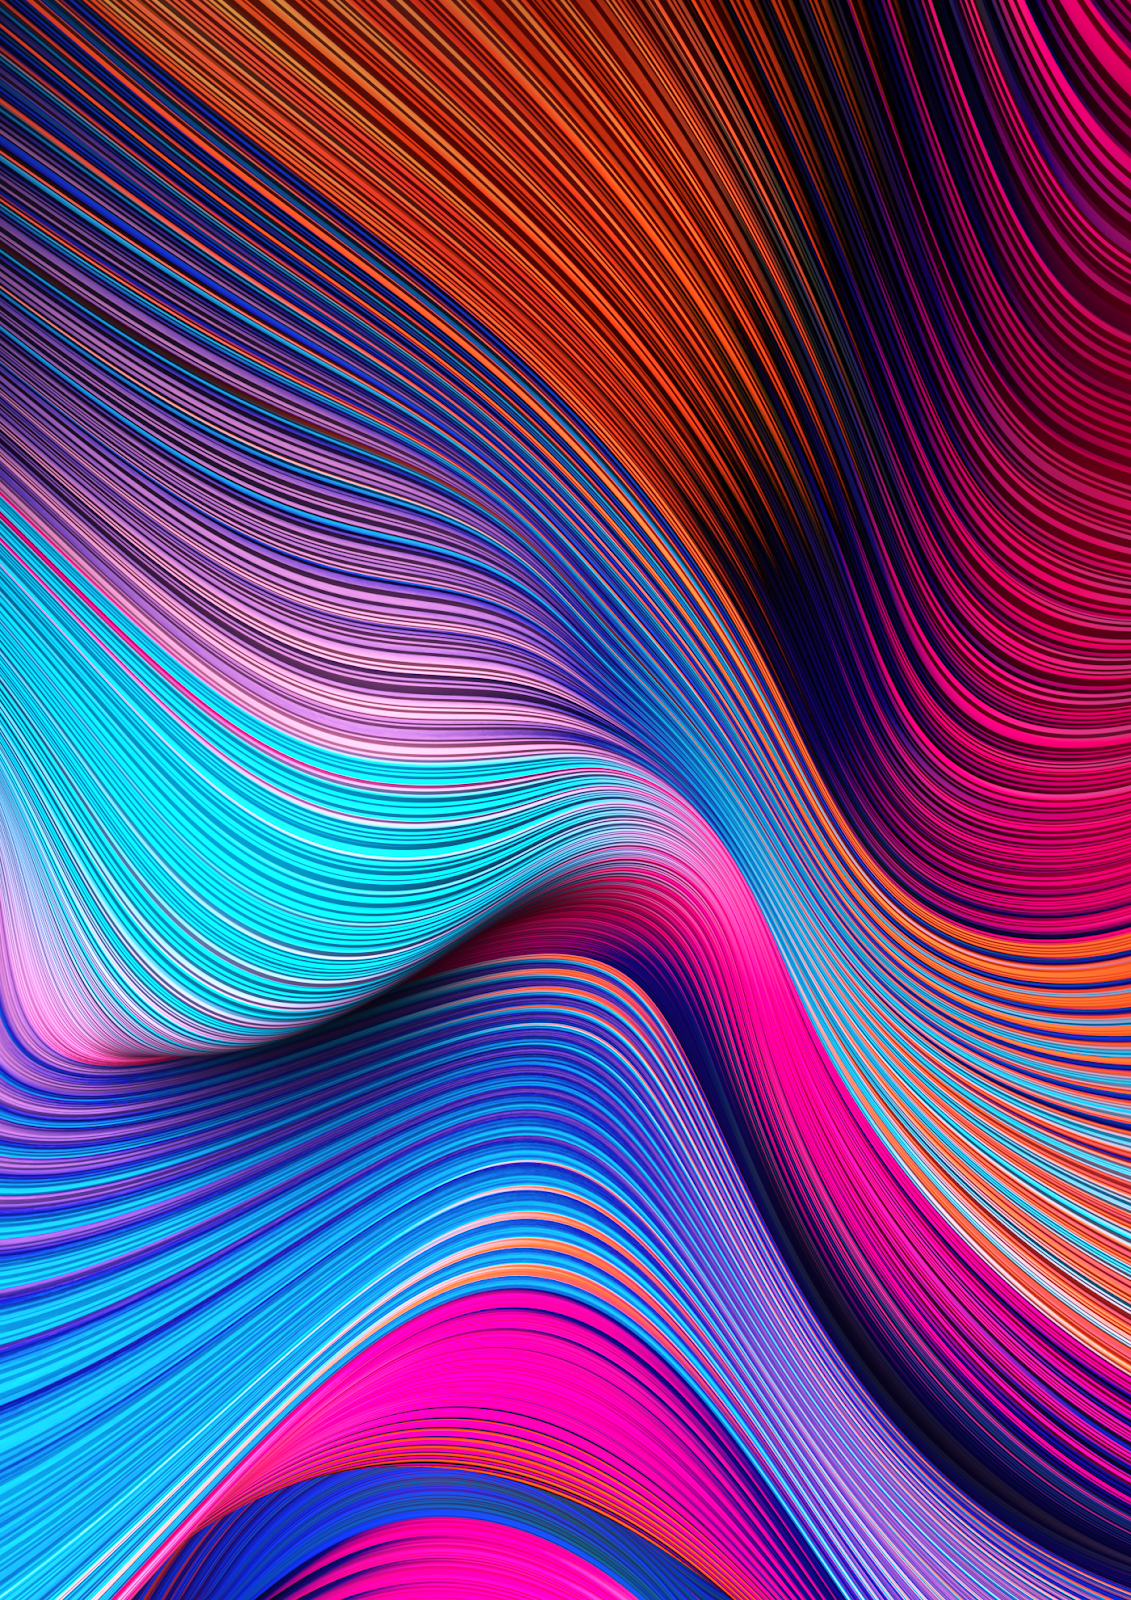 ABSTRACT PHONE WALLPAPER COLLECTION 195 in 2020 Abstract